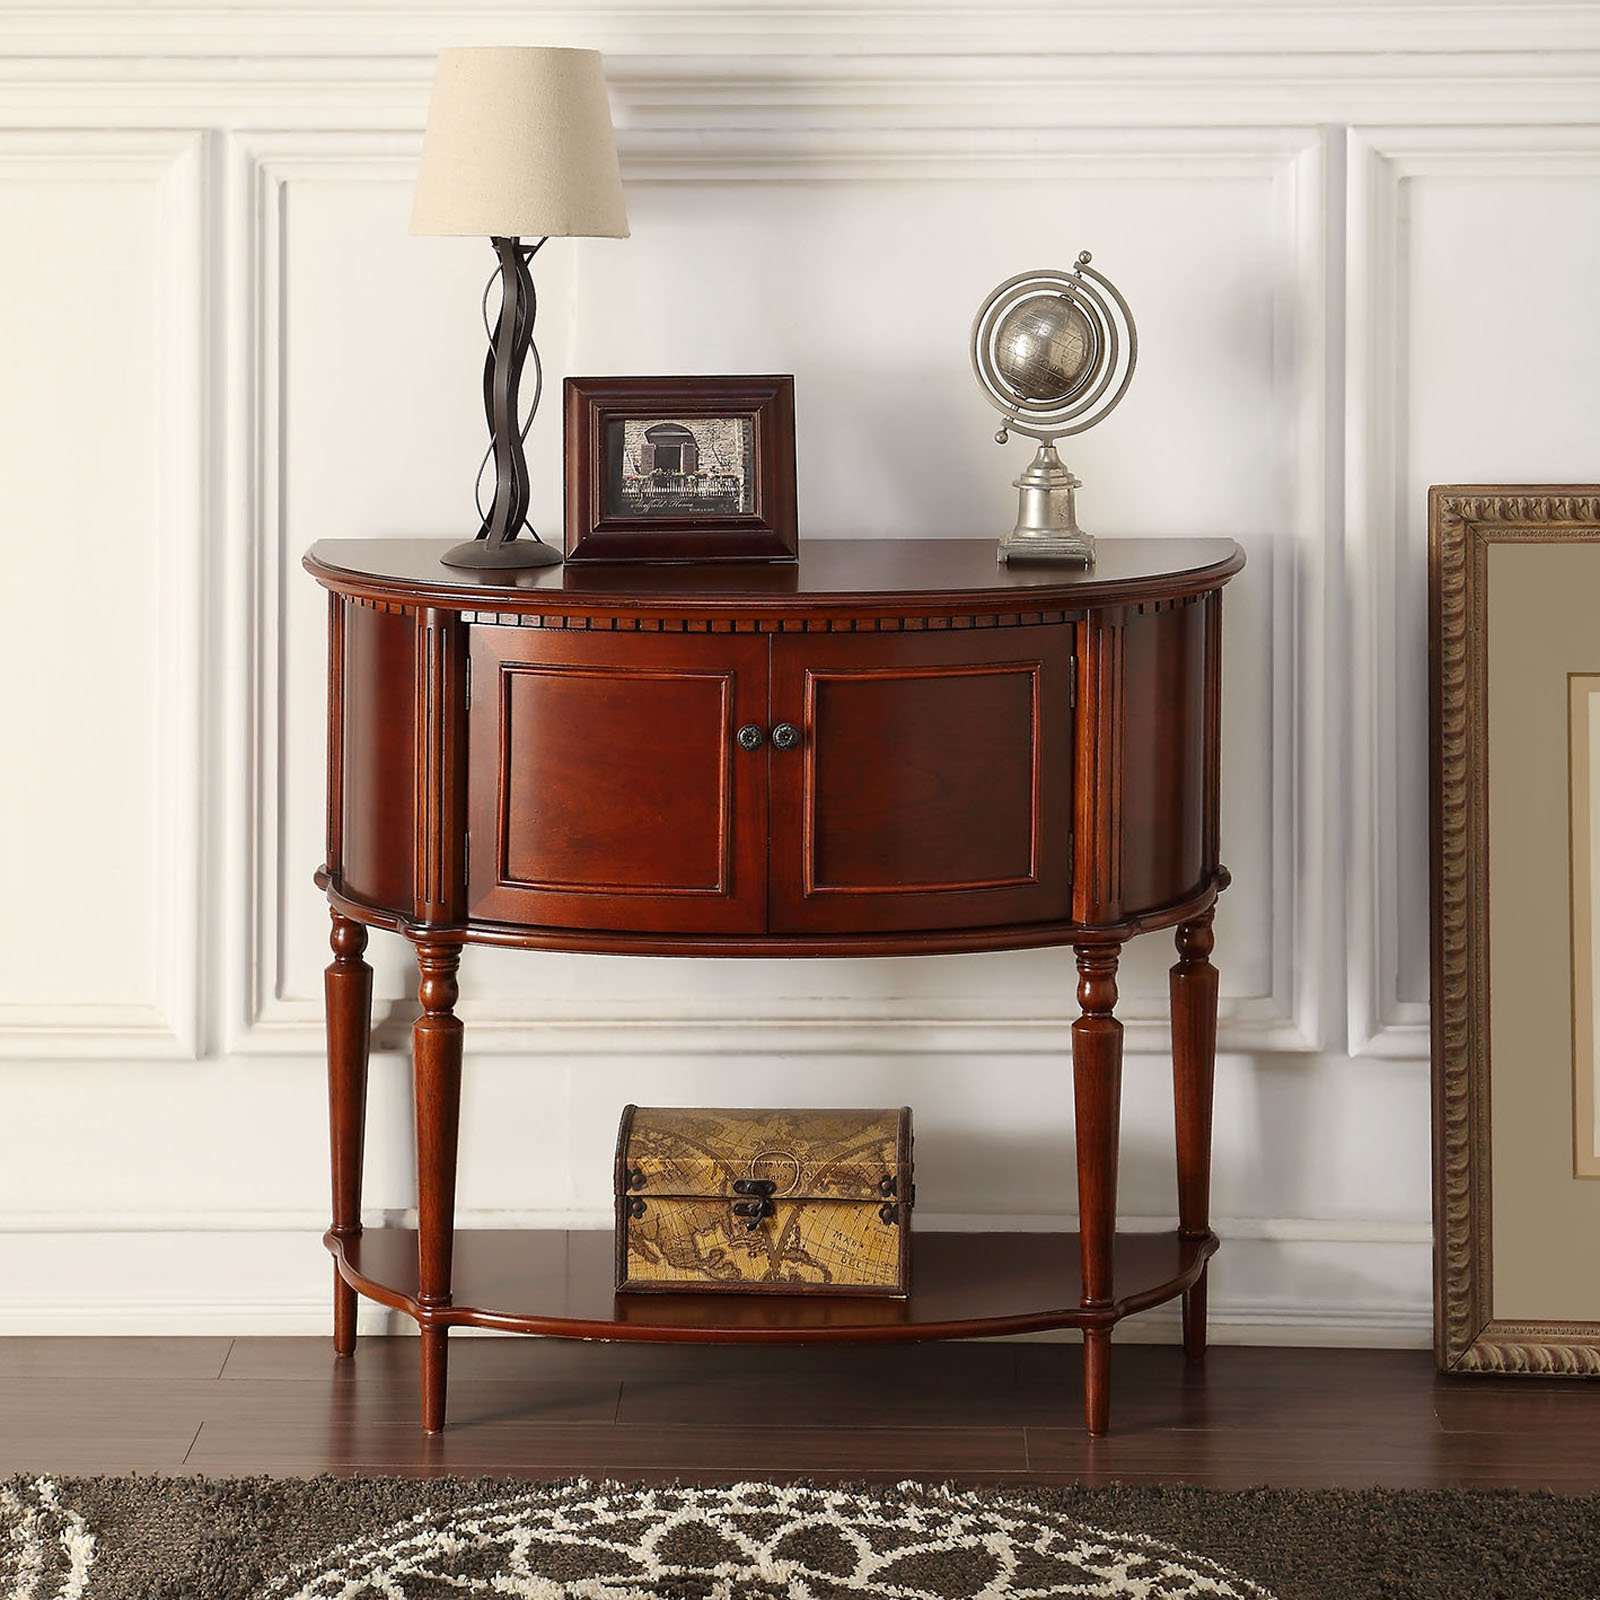 Acme Furniture Aplinas Crescent Console Table